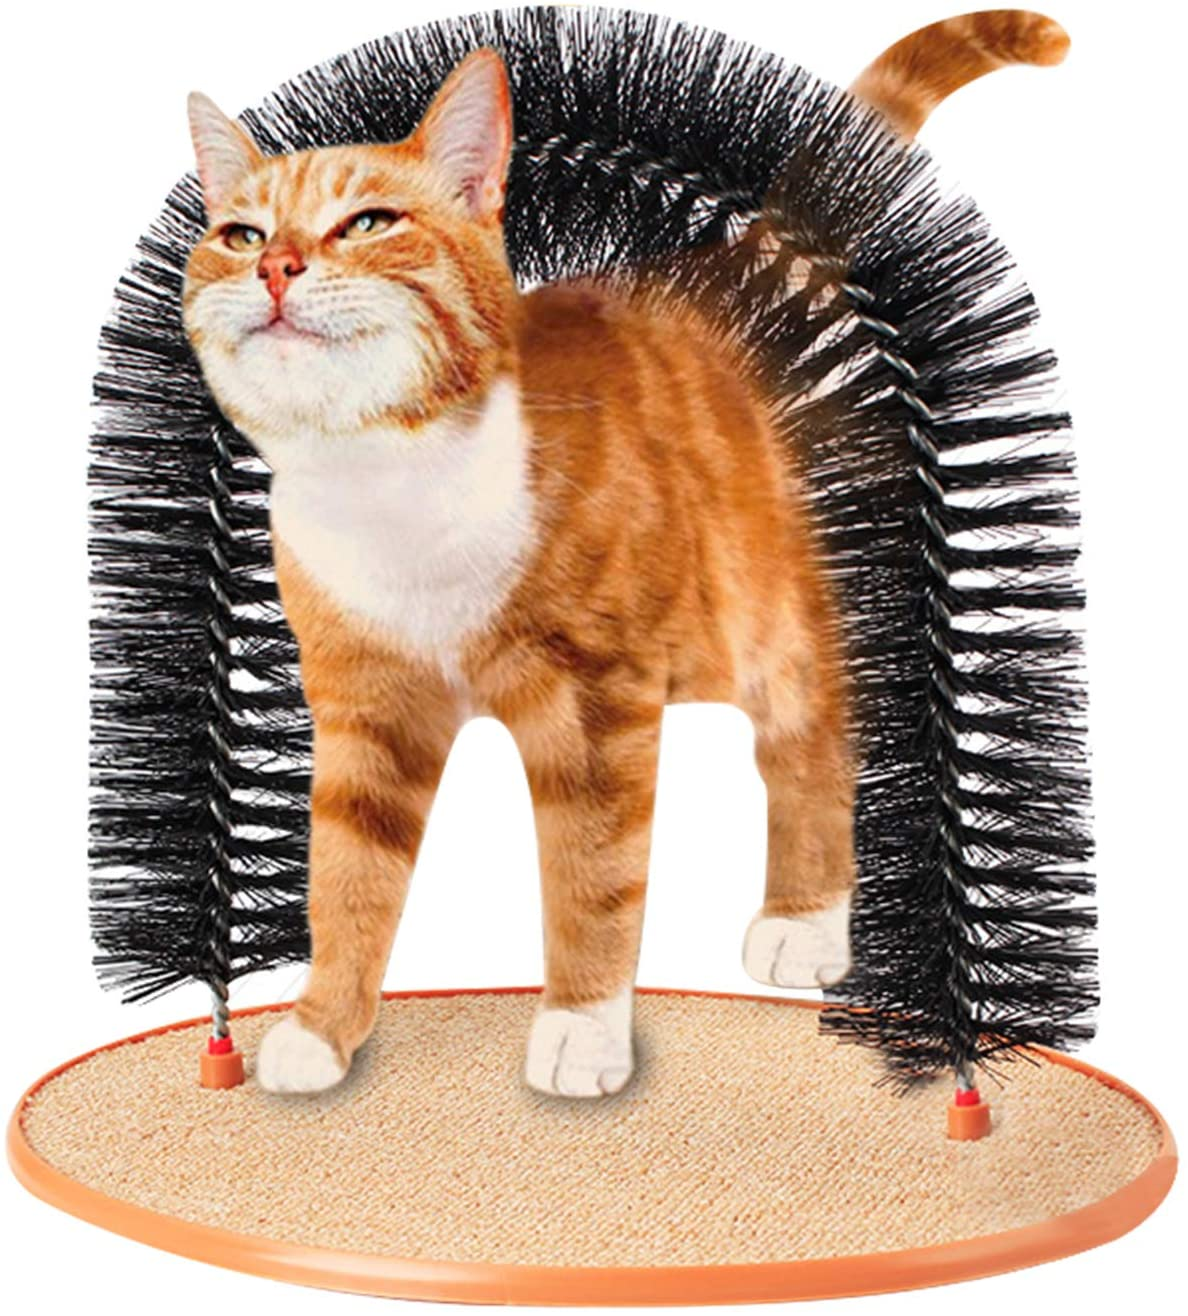 Cats Arch Self Groomer Massager Pet Puppy Cat Scratcher Cat Groom Toy Dog CombBrushes Controls Shedding Cat Lounge Games Toys with Scratch Pad and Catnip Fur Grooming Interactive Kitten Toys